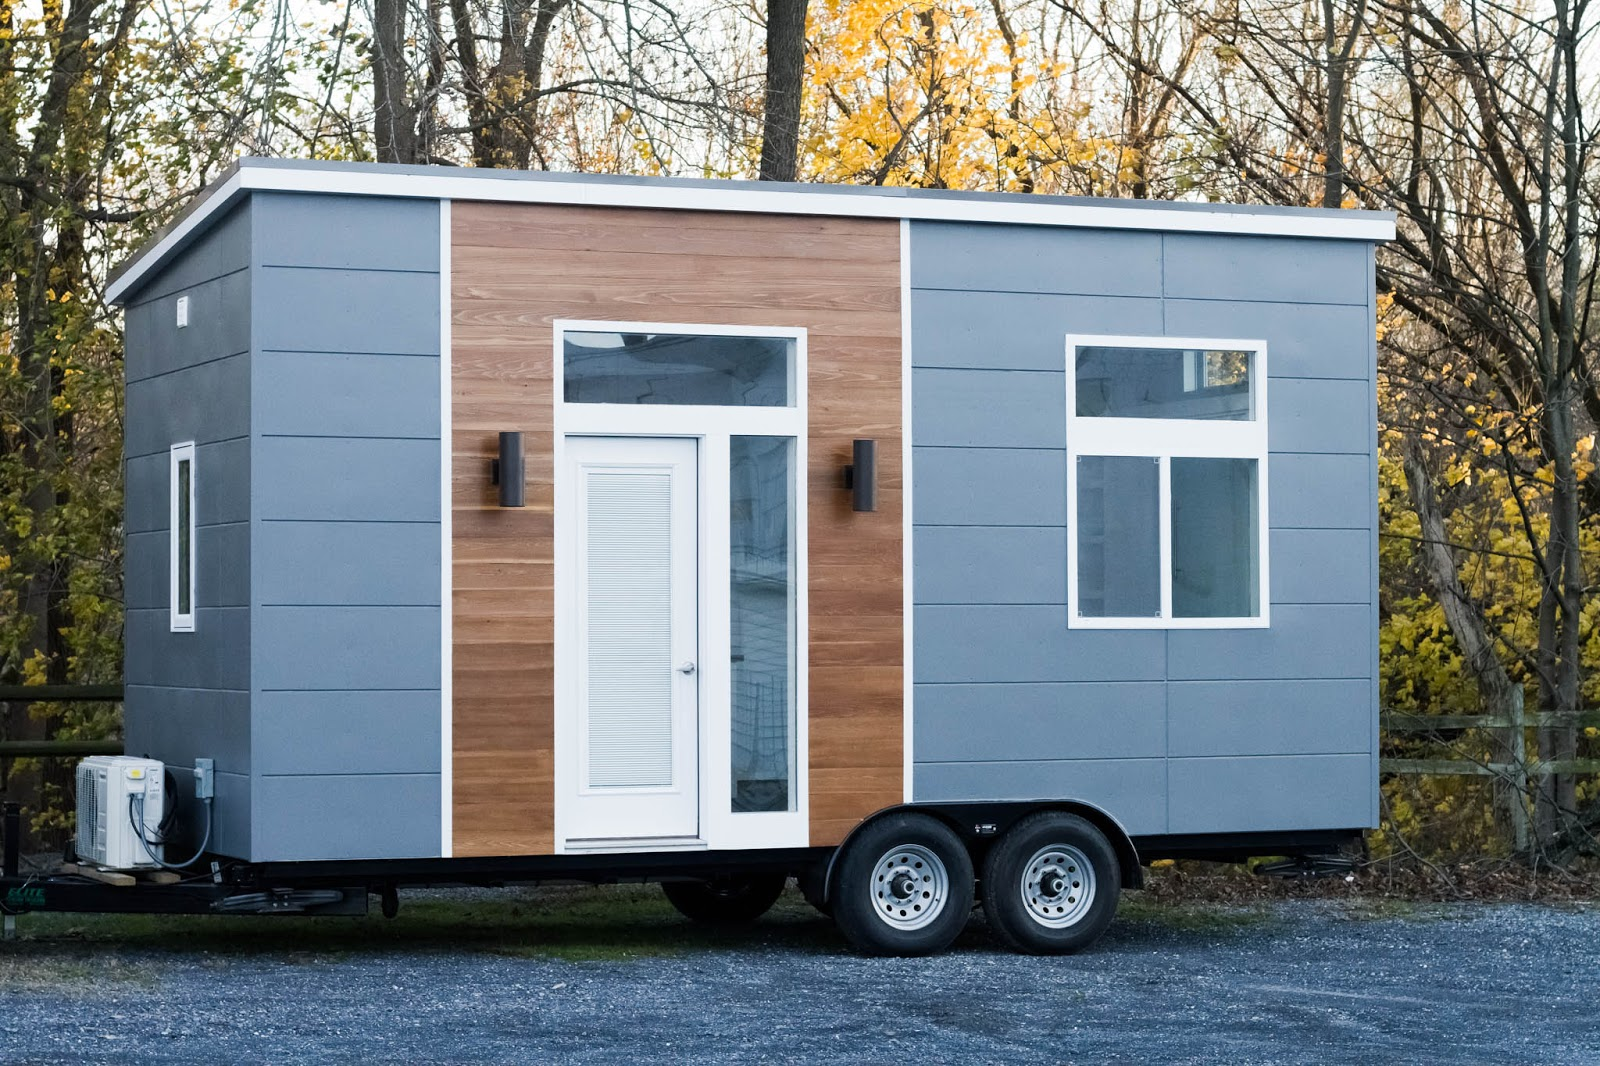 Tiny house town mid century modern tiny home 170 sq ft - The modern tiny house ...